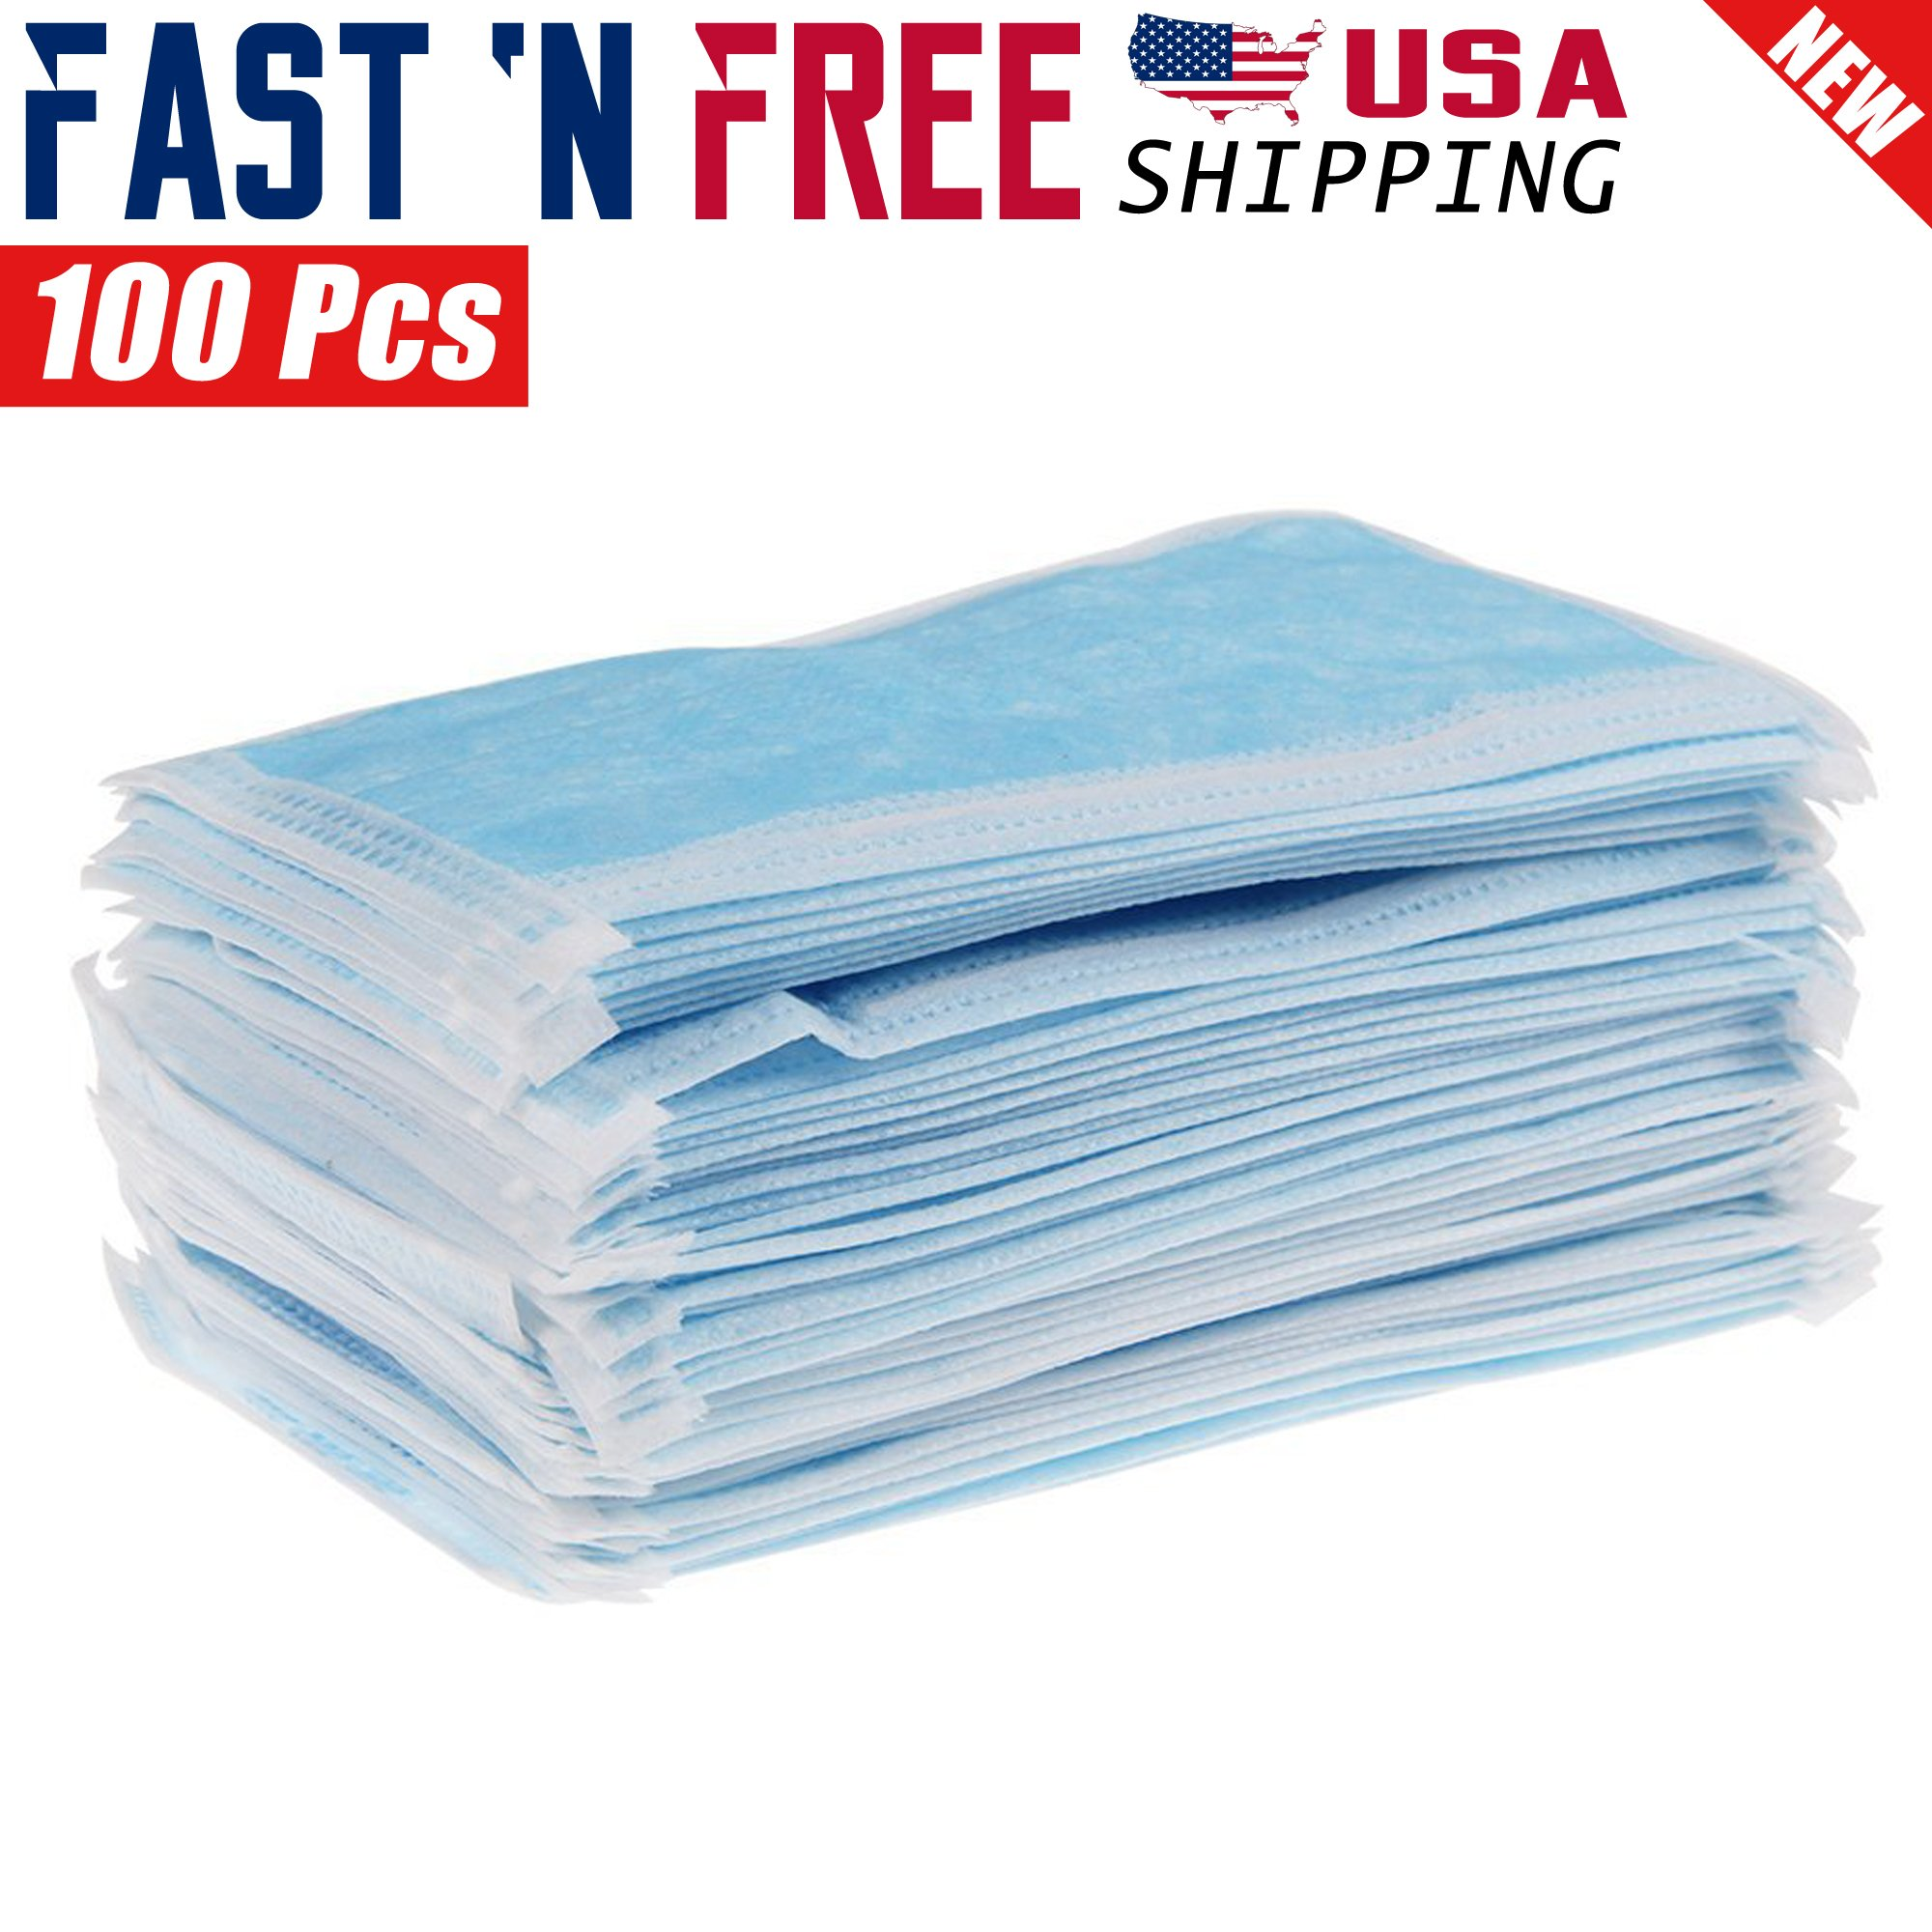 Details 100 Elastic For 3-ply About Pcs Medical Disposable Painters Earloop Face Dust Mask